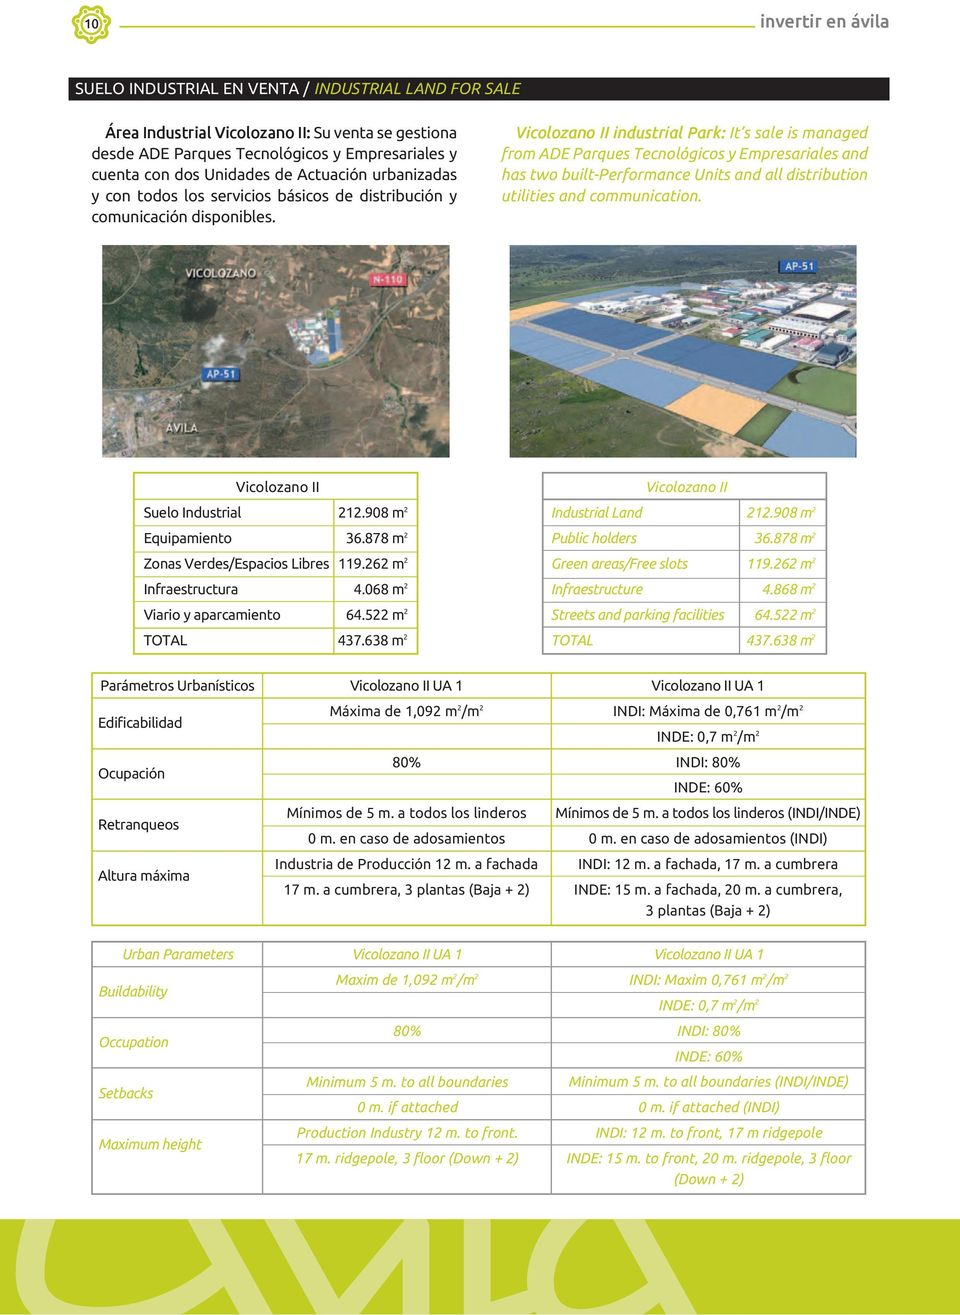 It s sale is managed from ADE Parques Tecnológicos y Empresariales and has two built-performance Units and all distribution utilities and communication. Vicolozano II Suelo Industrial 212.